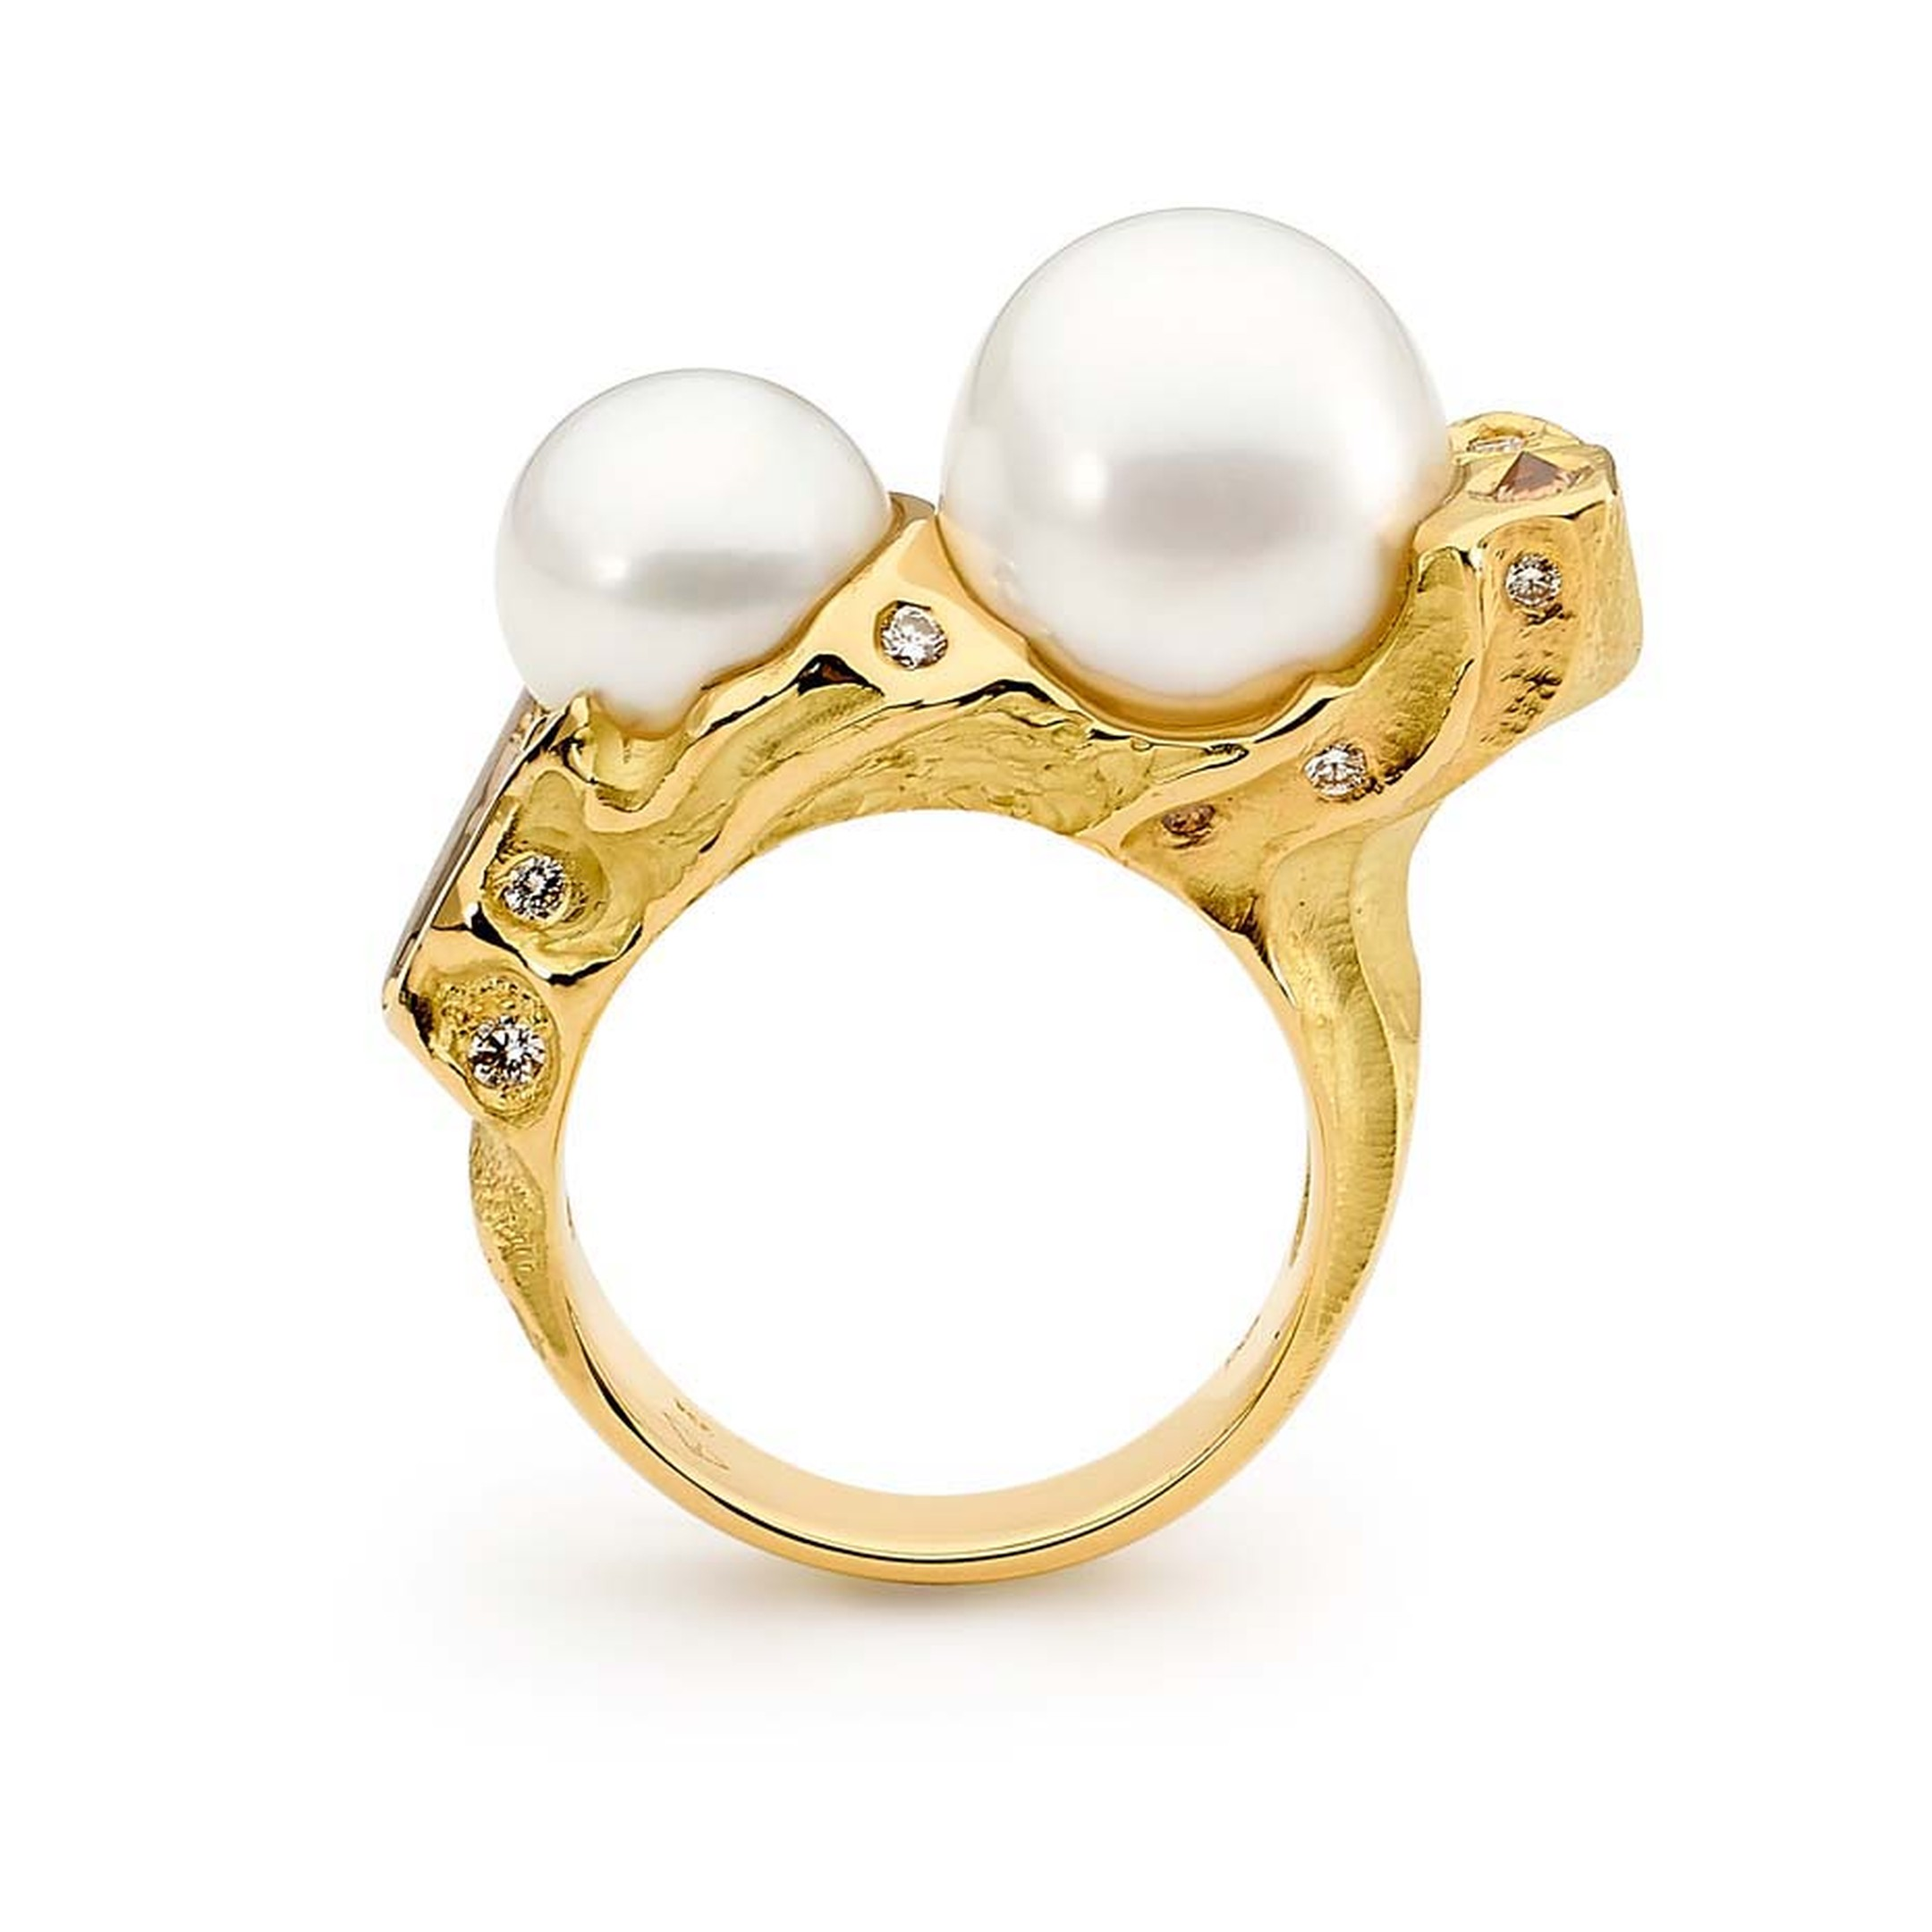 Linneys ring in two-tone gold with two Australian South Sea pearls.